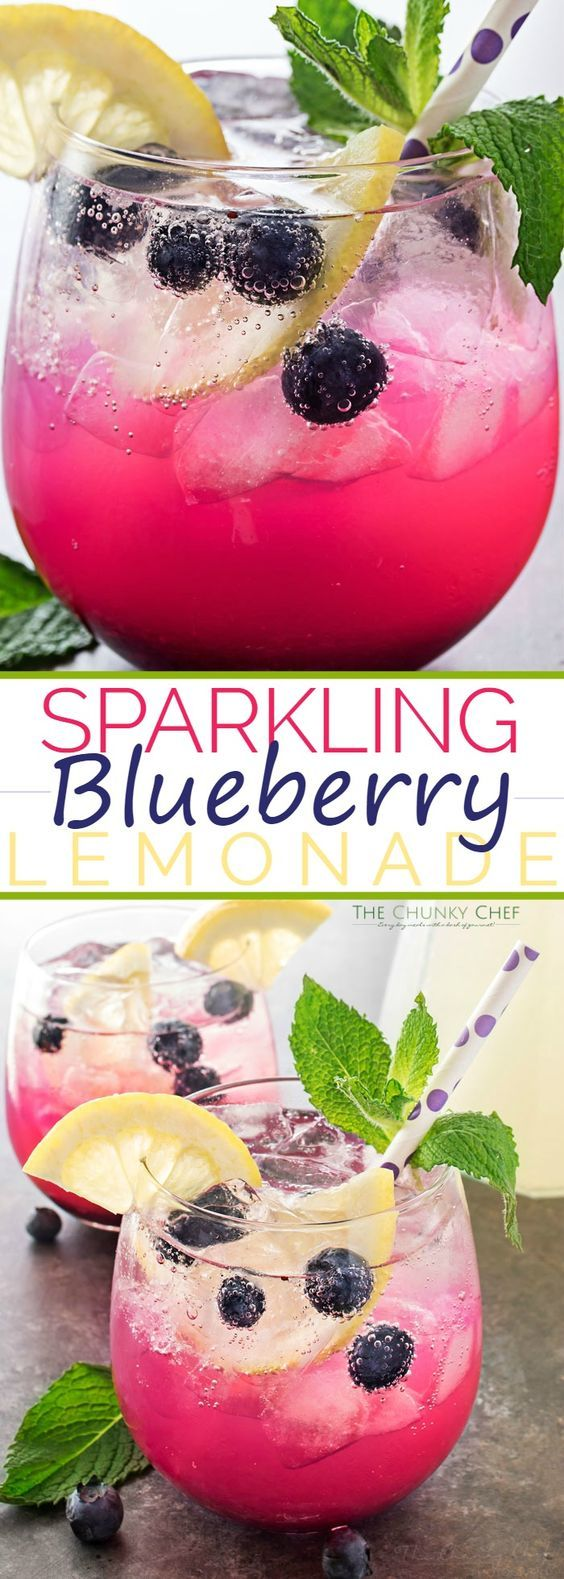 Sparkling Blueberry Lemonade - The Chunky Chef